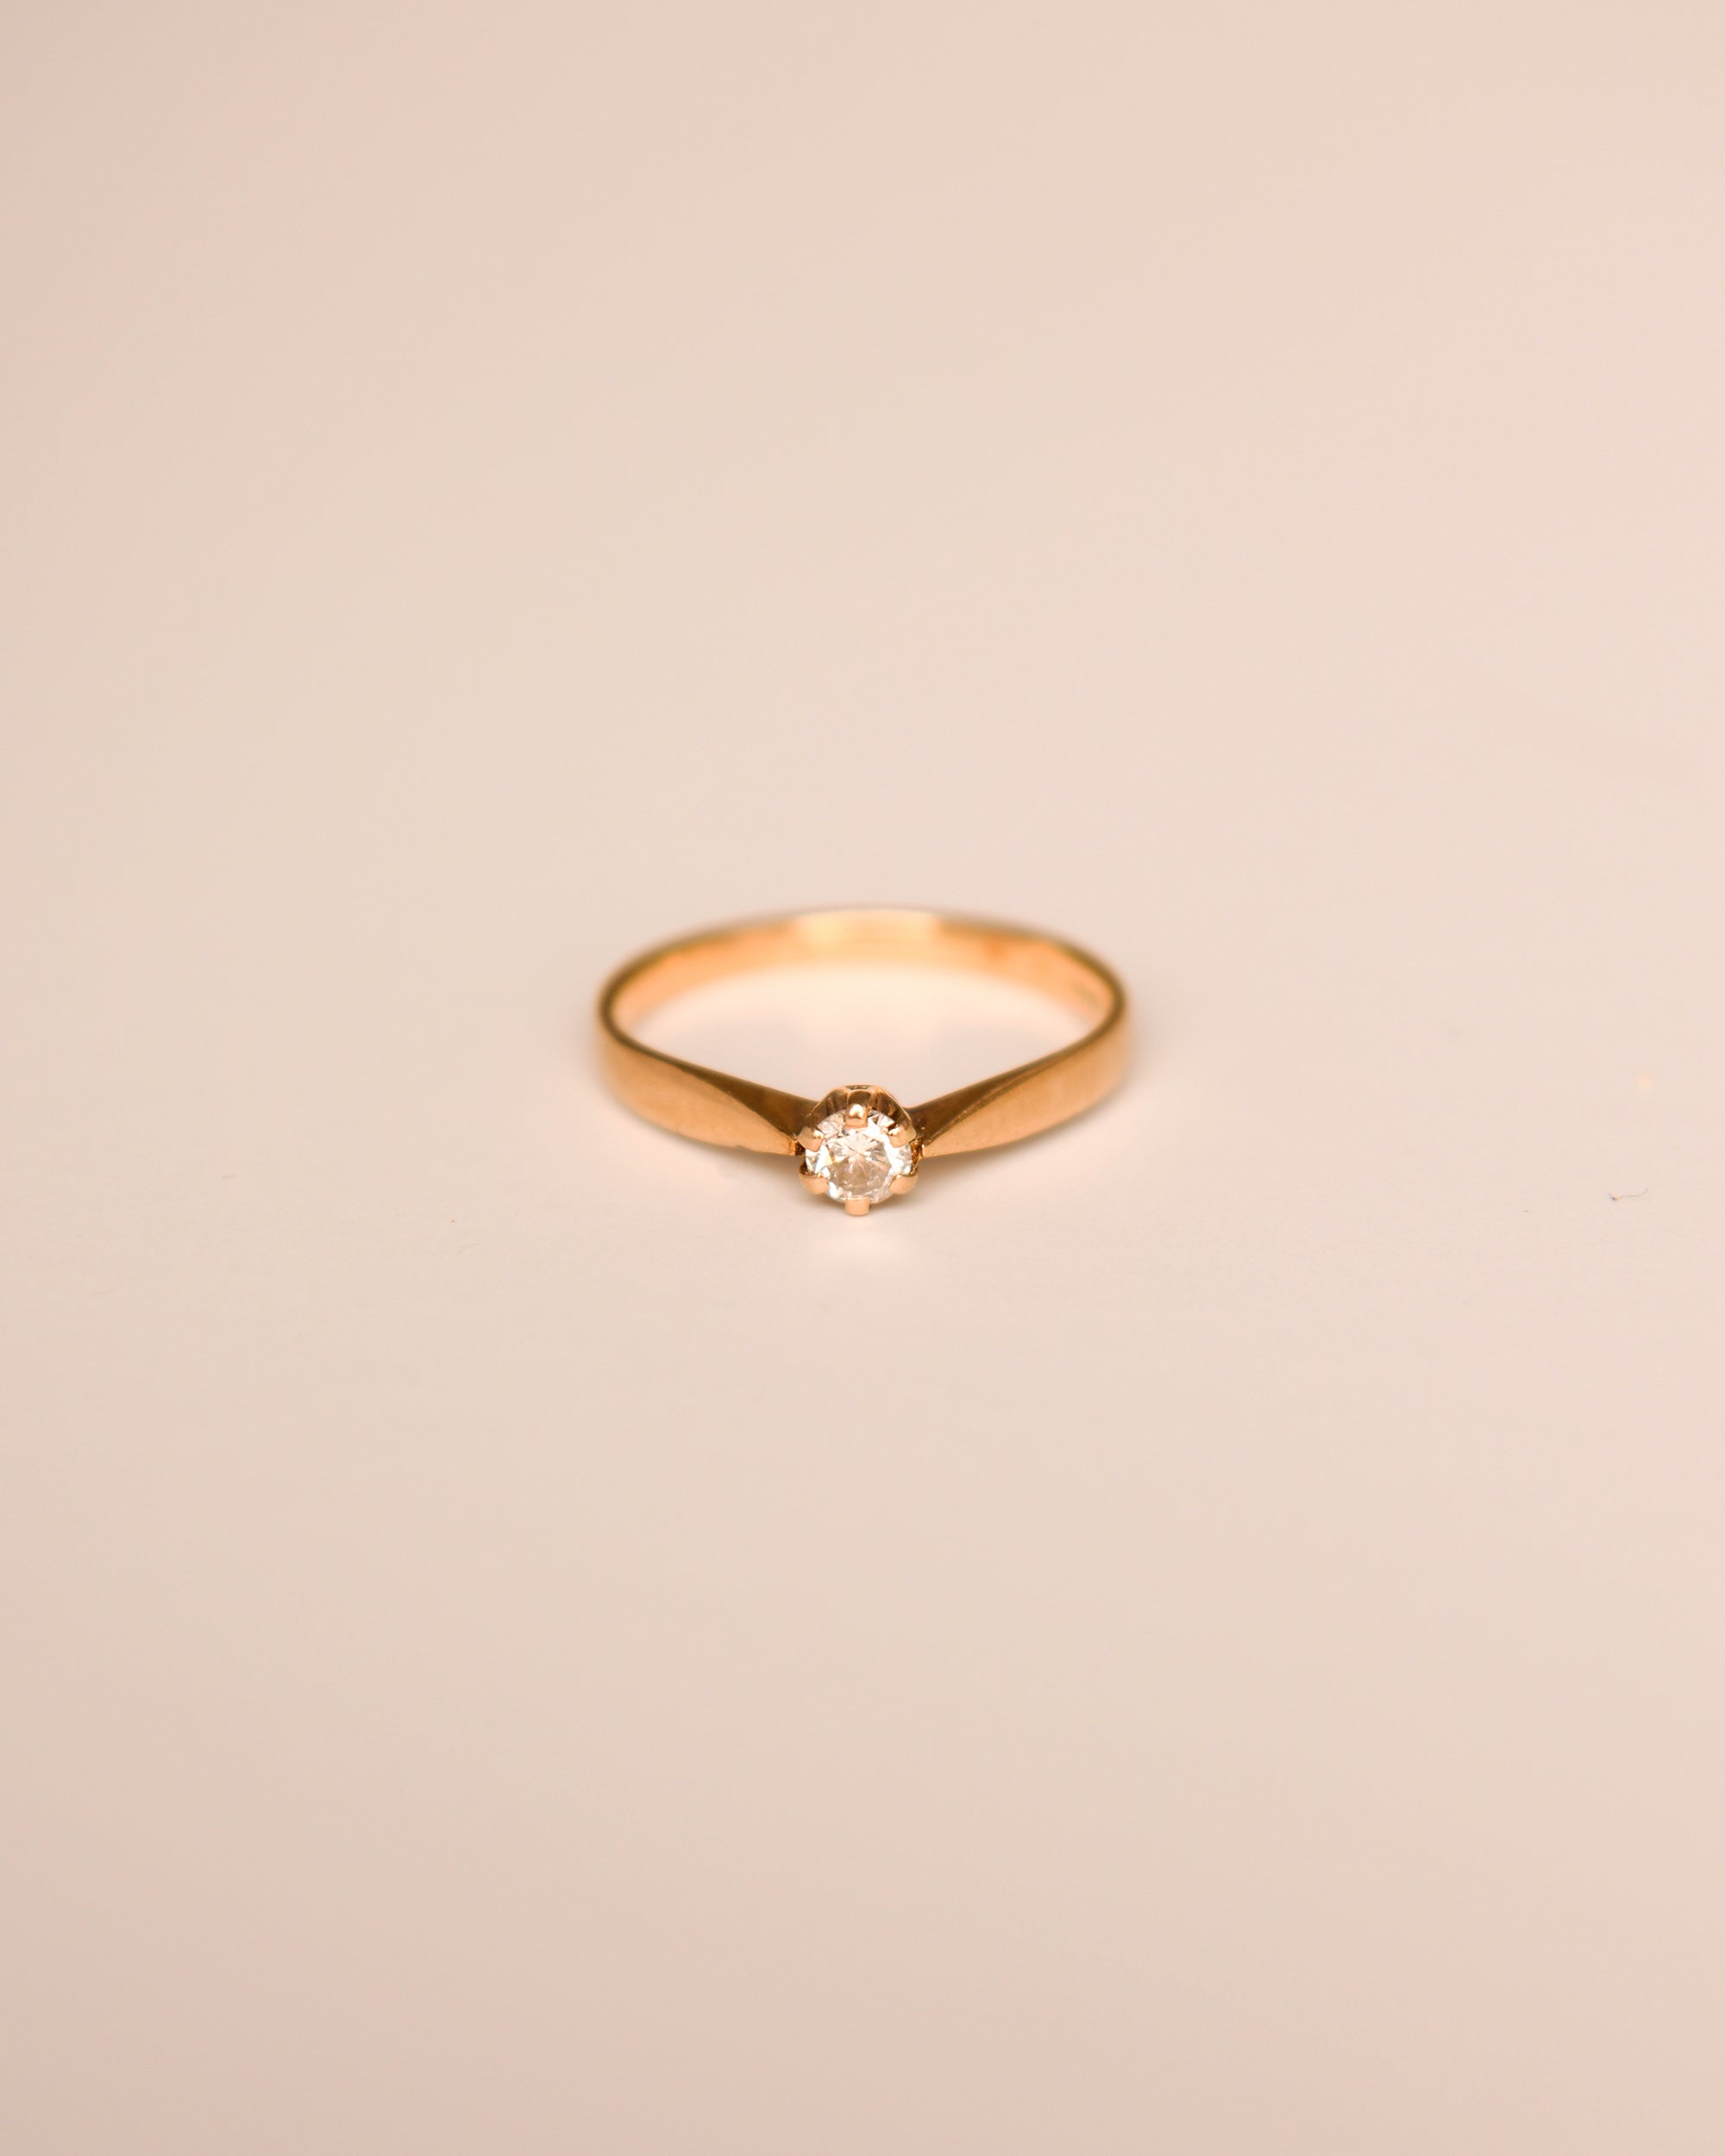 Image of Alice 9ct Gold Vintage Solitaire Diamond Ring